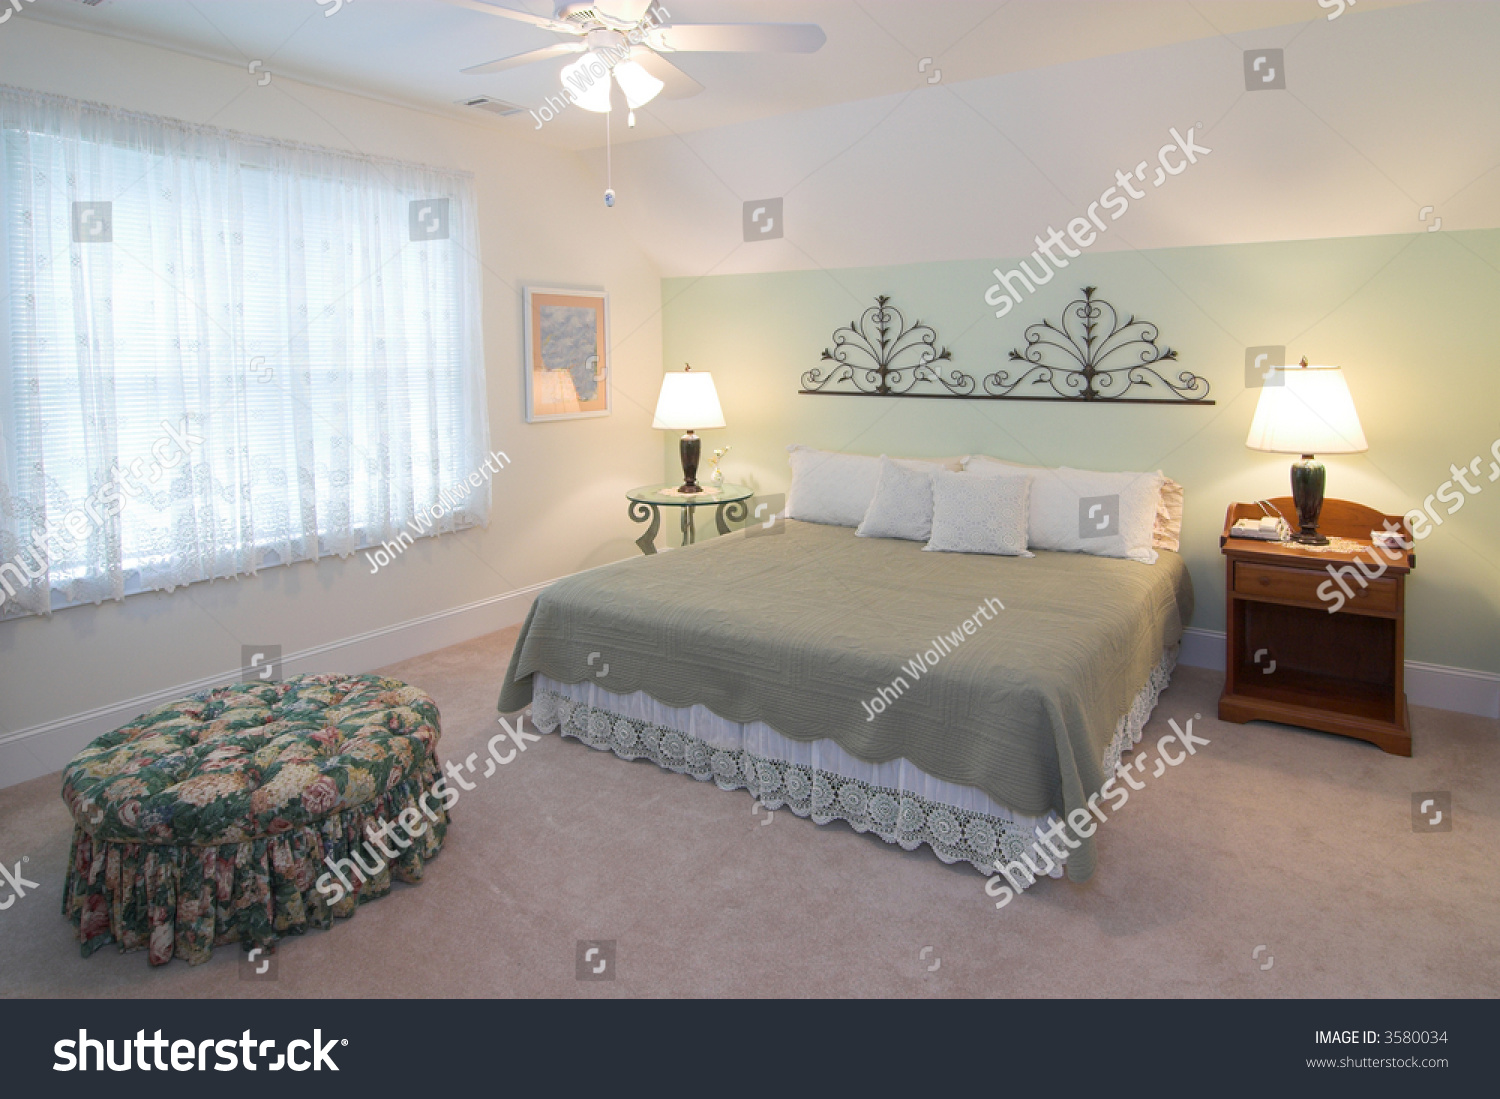 Simple Master Bedroom With King Size Bed Stock Photo 3580034 Shutterstock